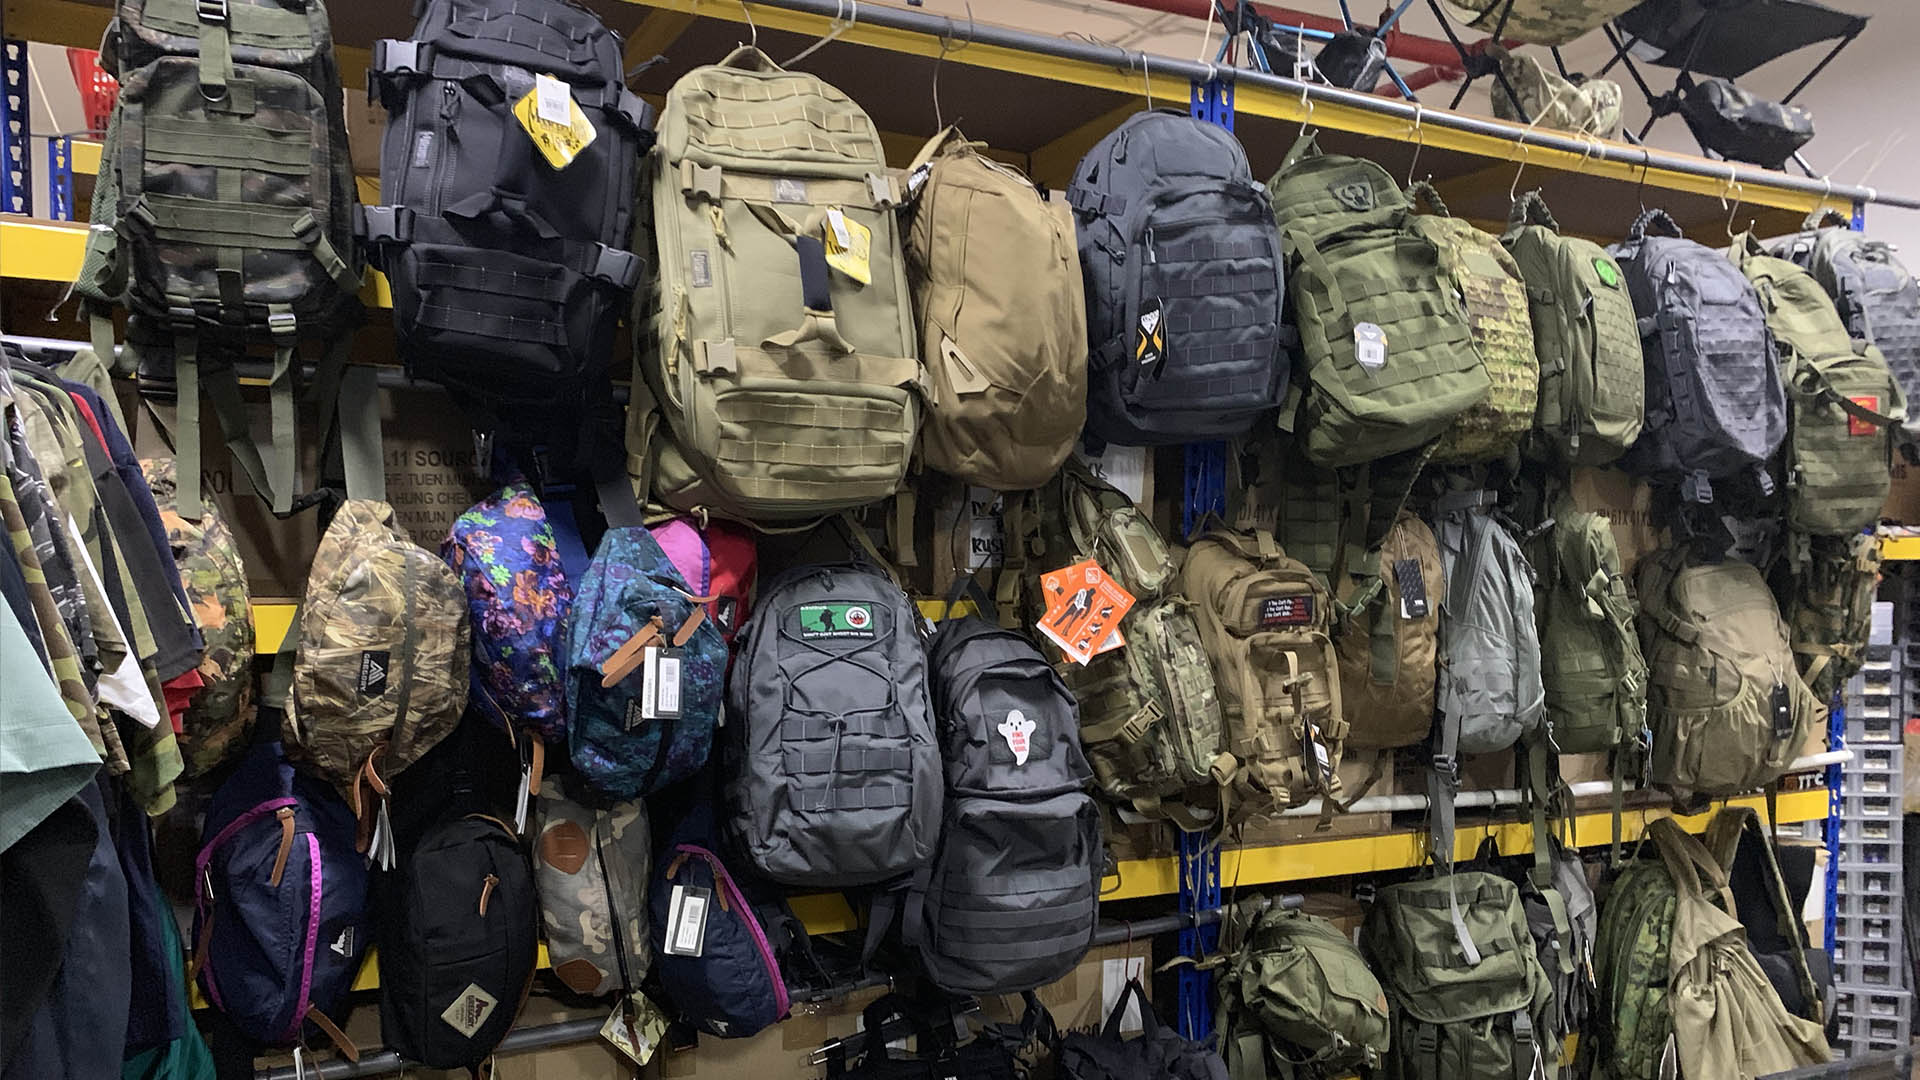 Army Shops For Your Last Minute Reservist Shopping